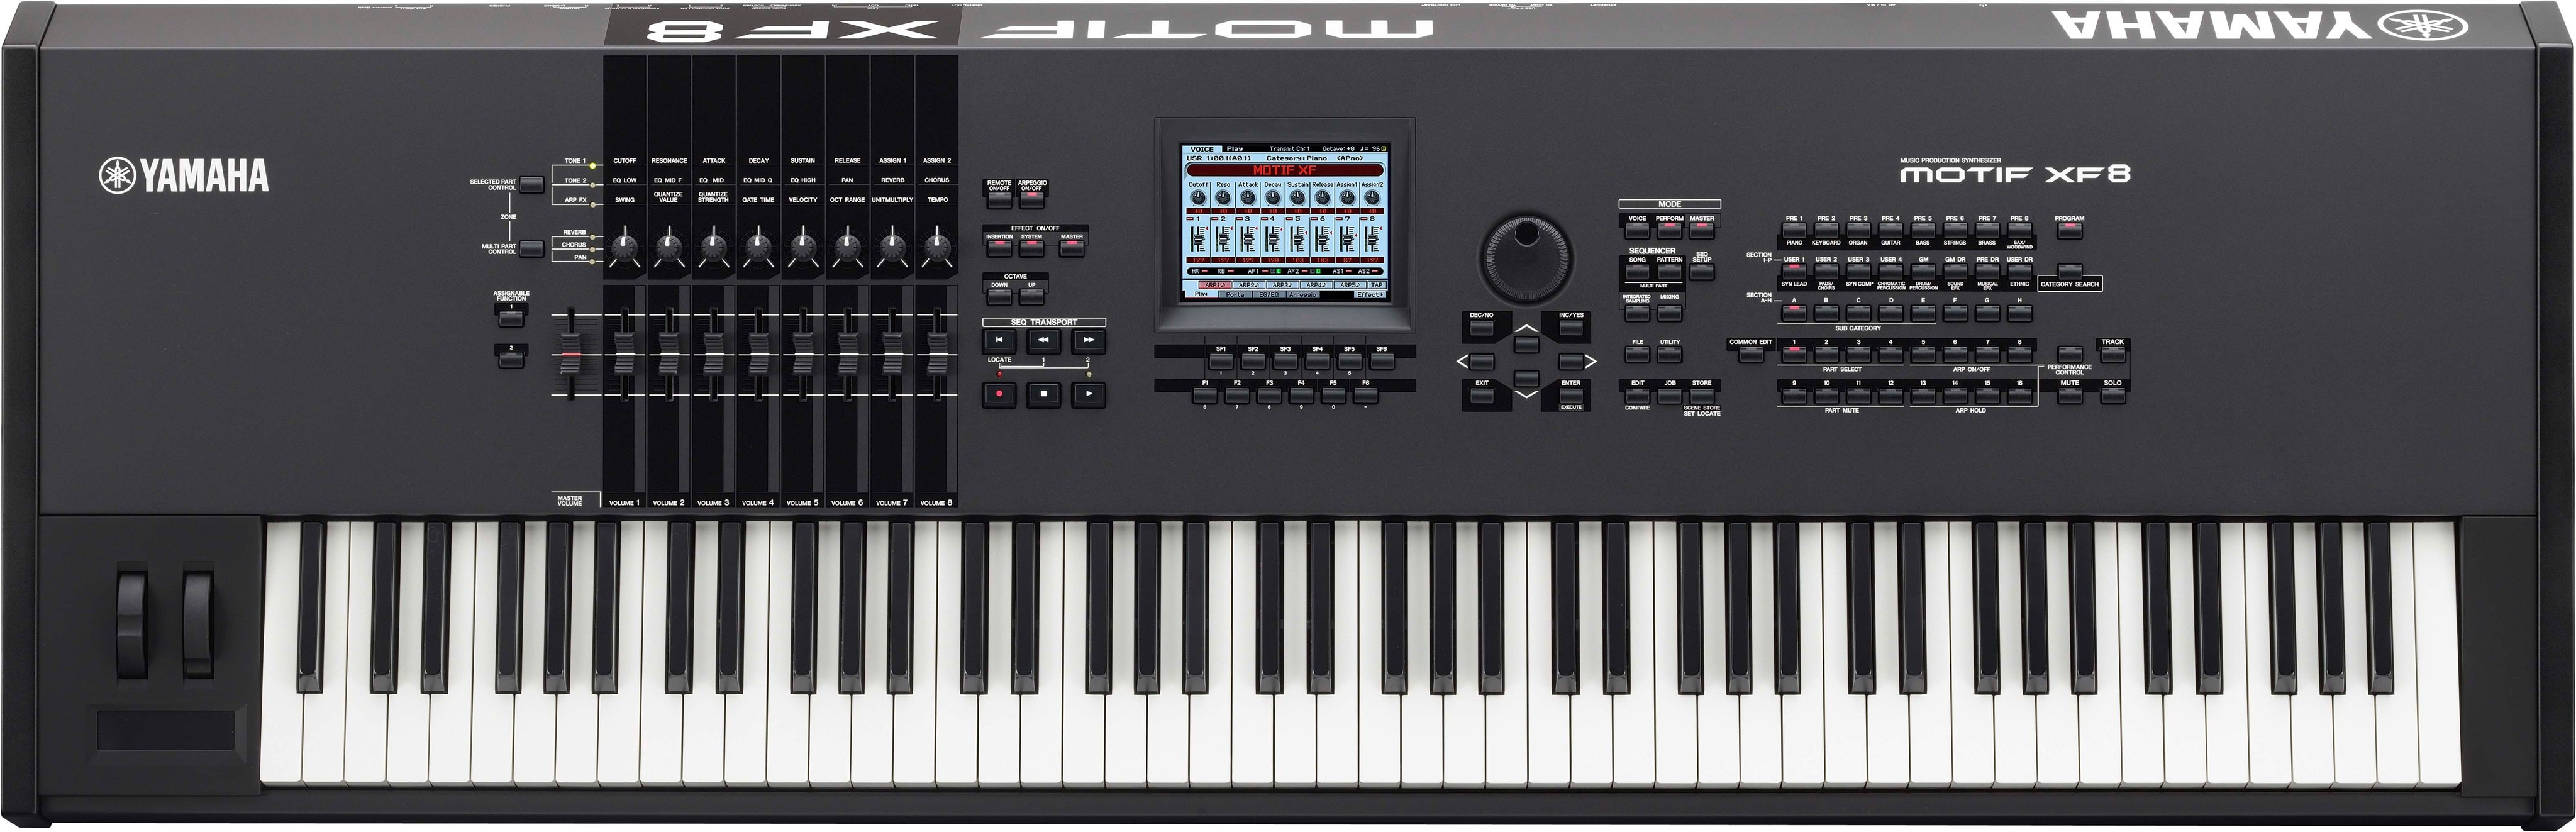 motif xf overview synthesizers synthesizers music production rh europe yamaha com motif xf reference manual pdf motif xf reference manual pdf